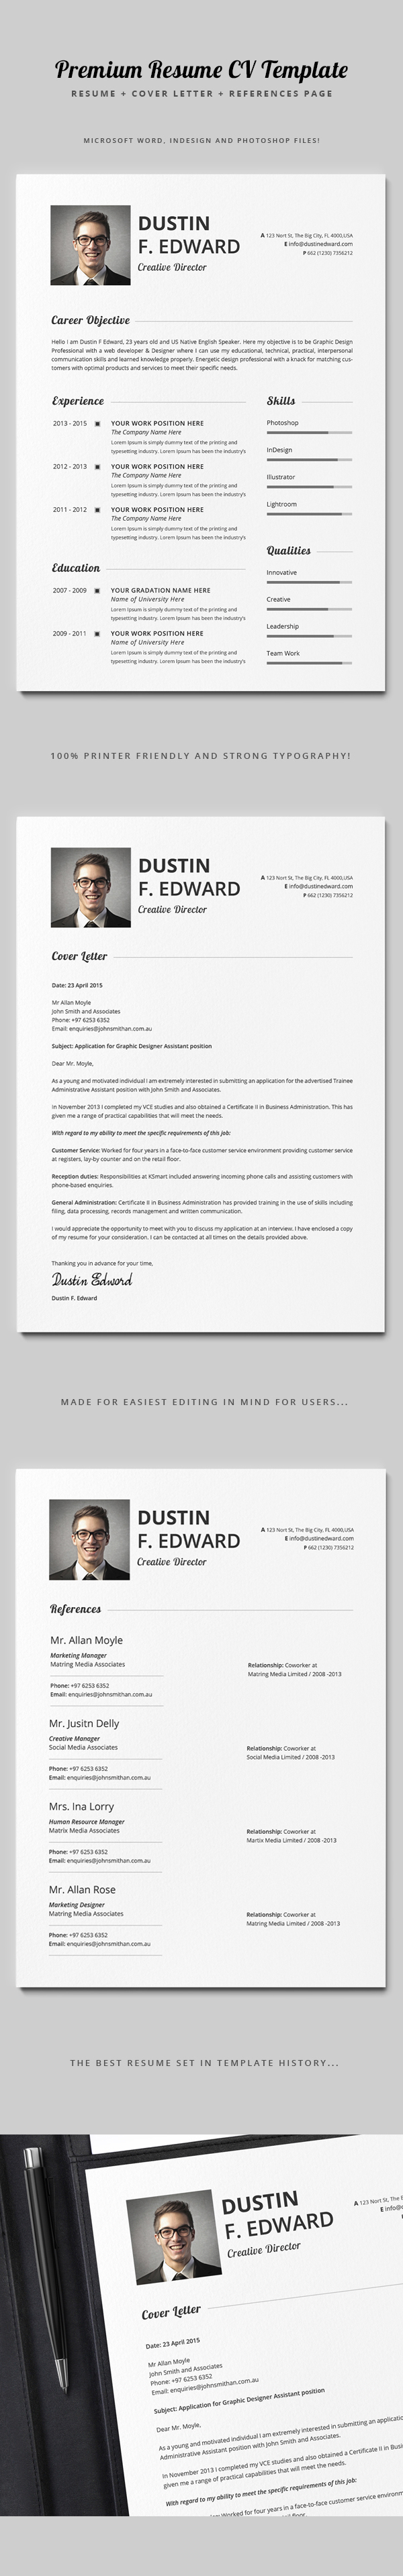 premium resume cv template set on behance a 3 pieces premium resume set designed for any creative organization to express you in this main you will be able to create your own fully